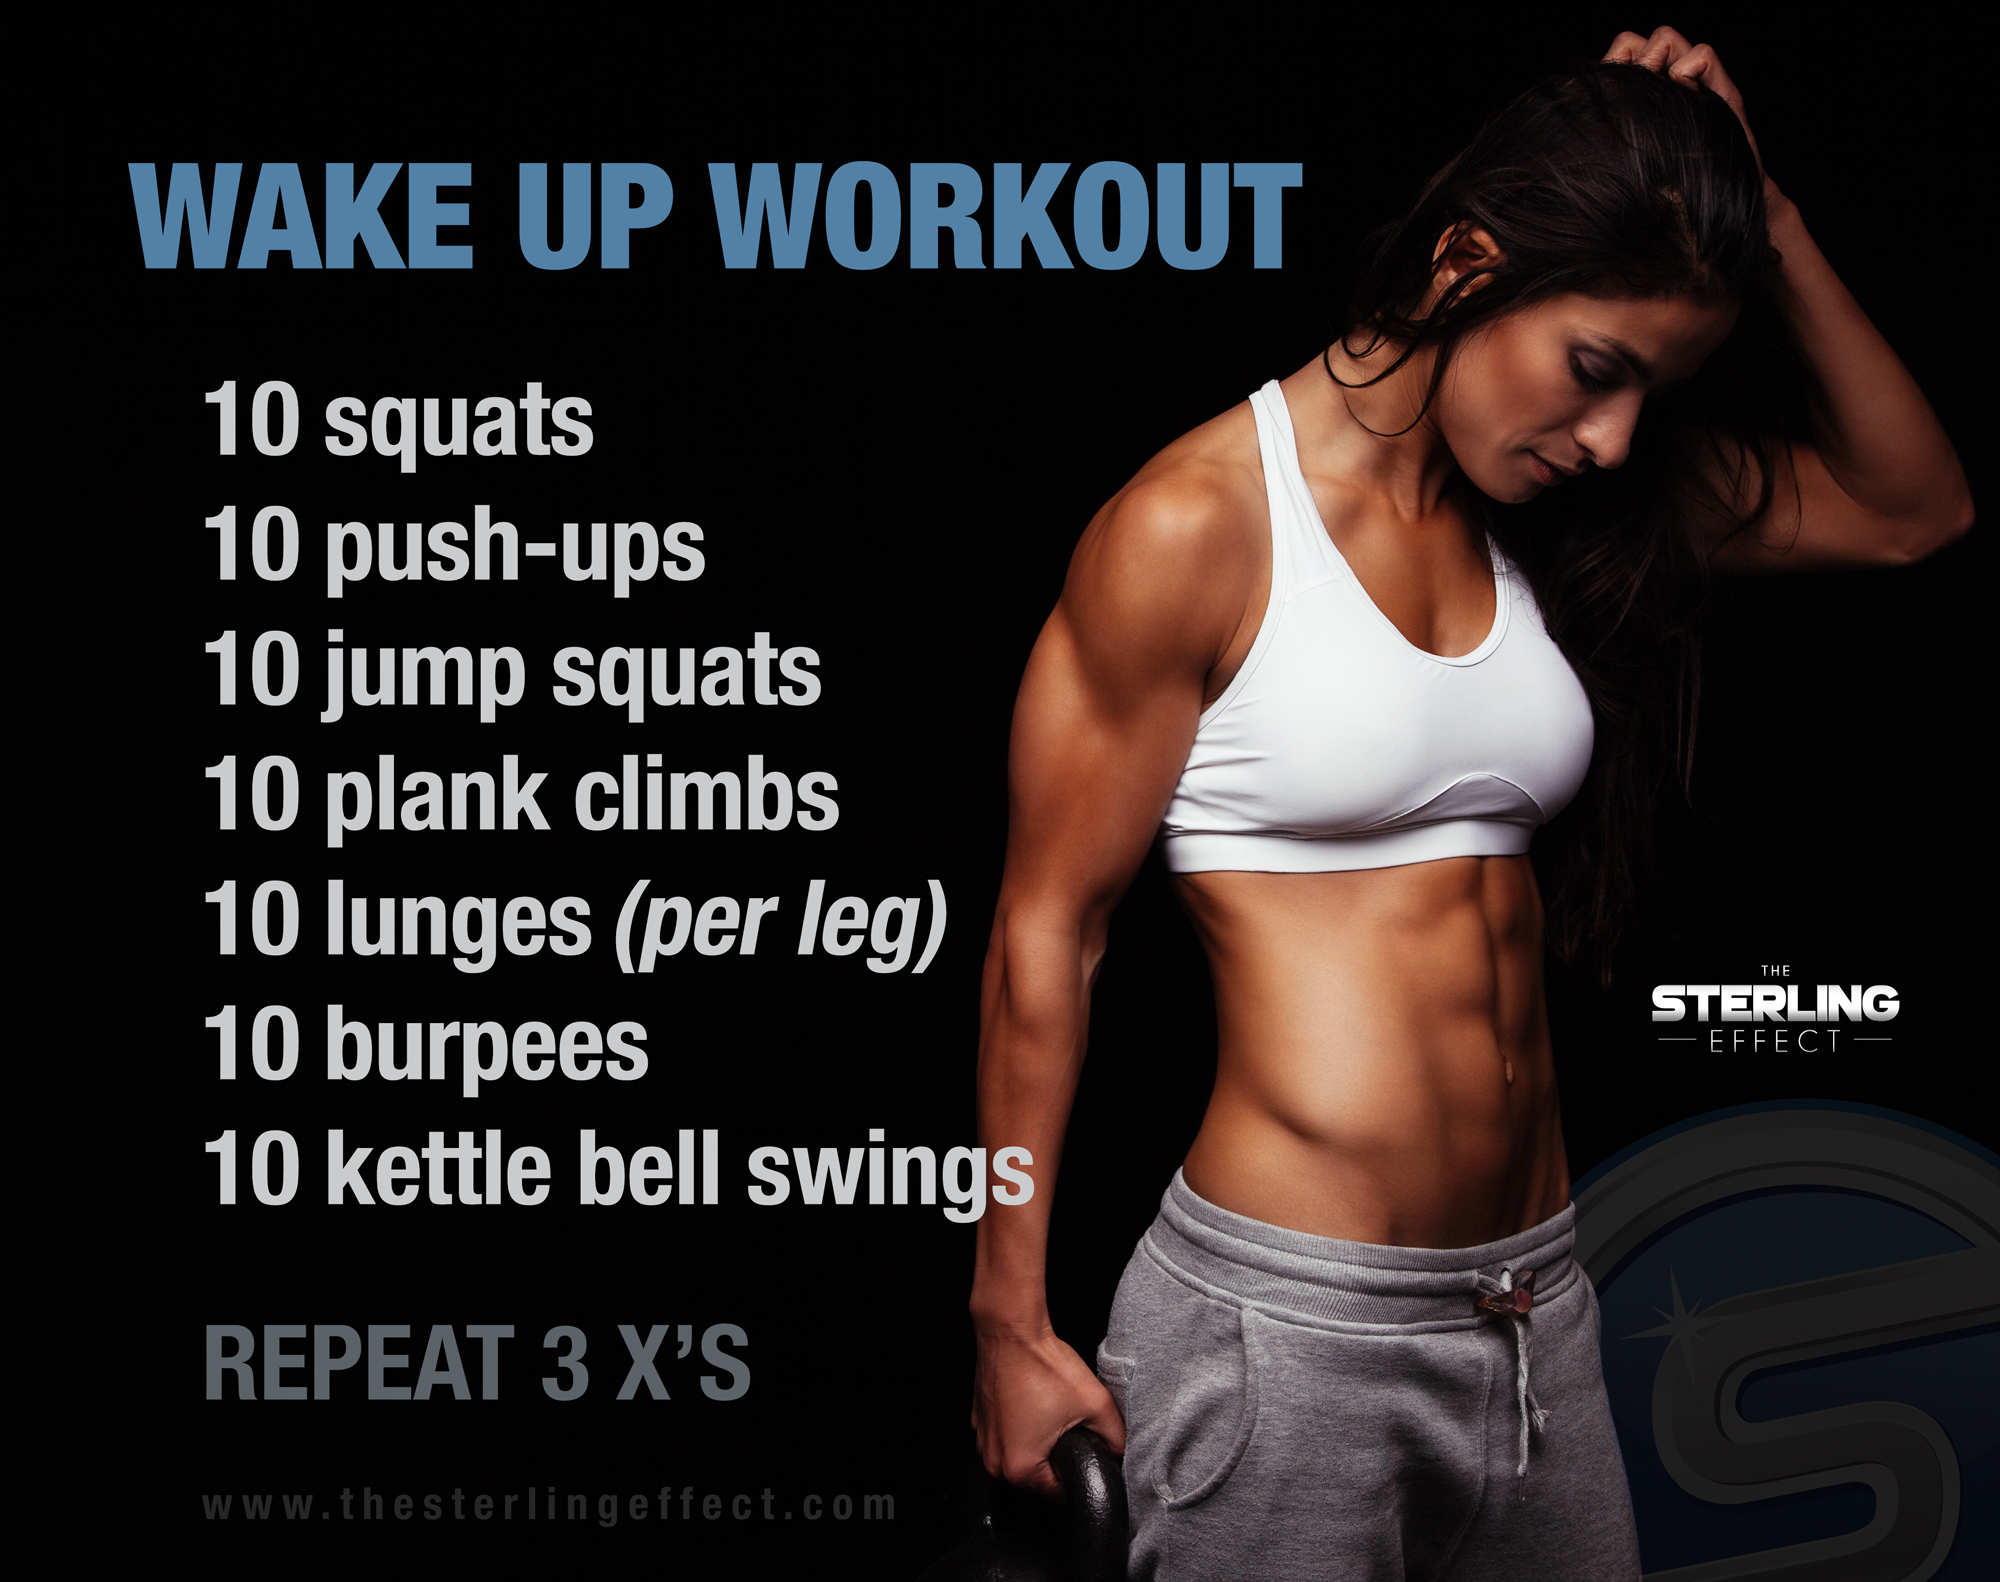 FREE workout for the morning